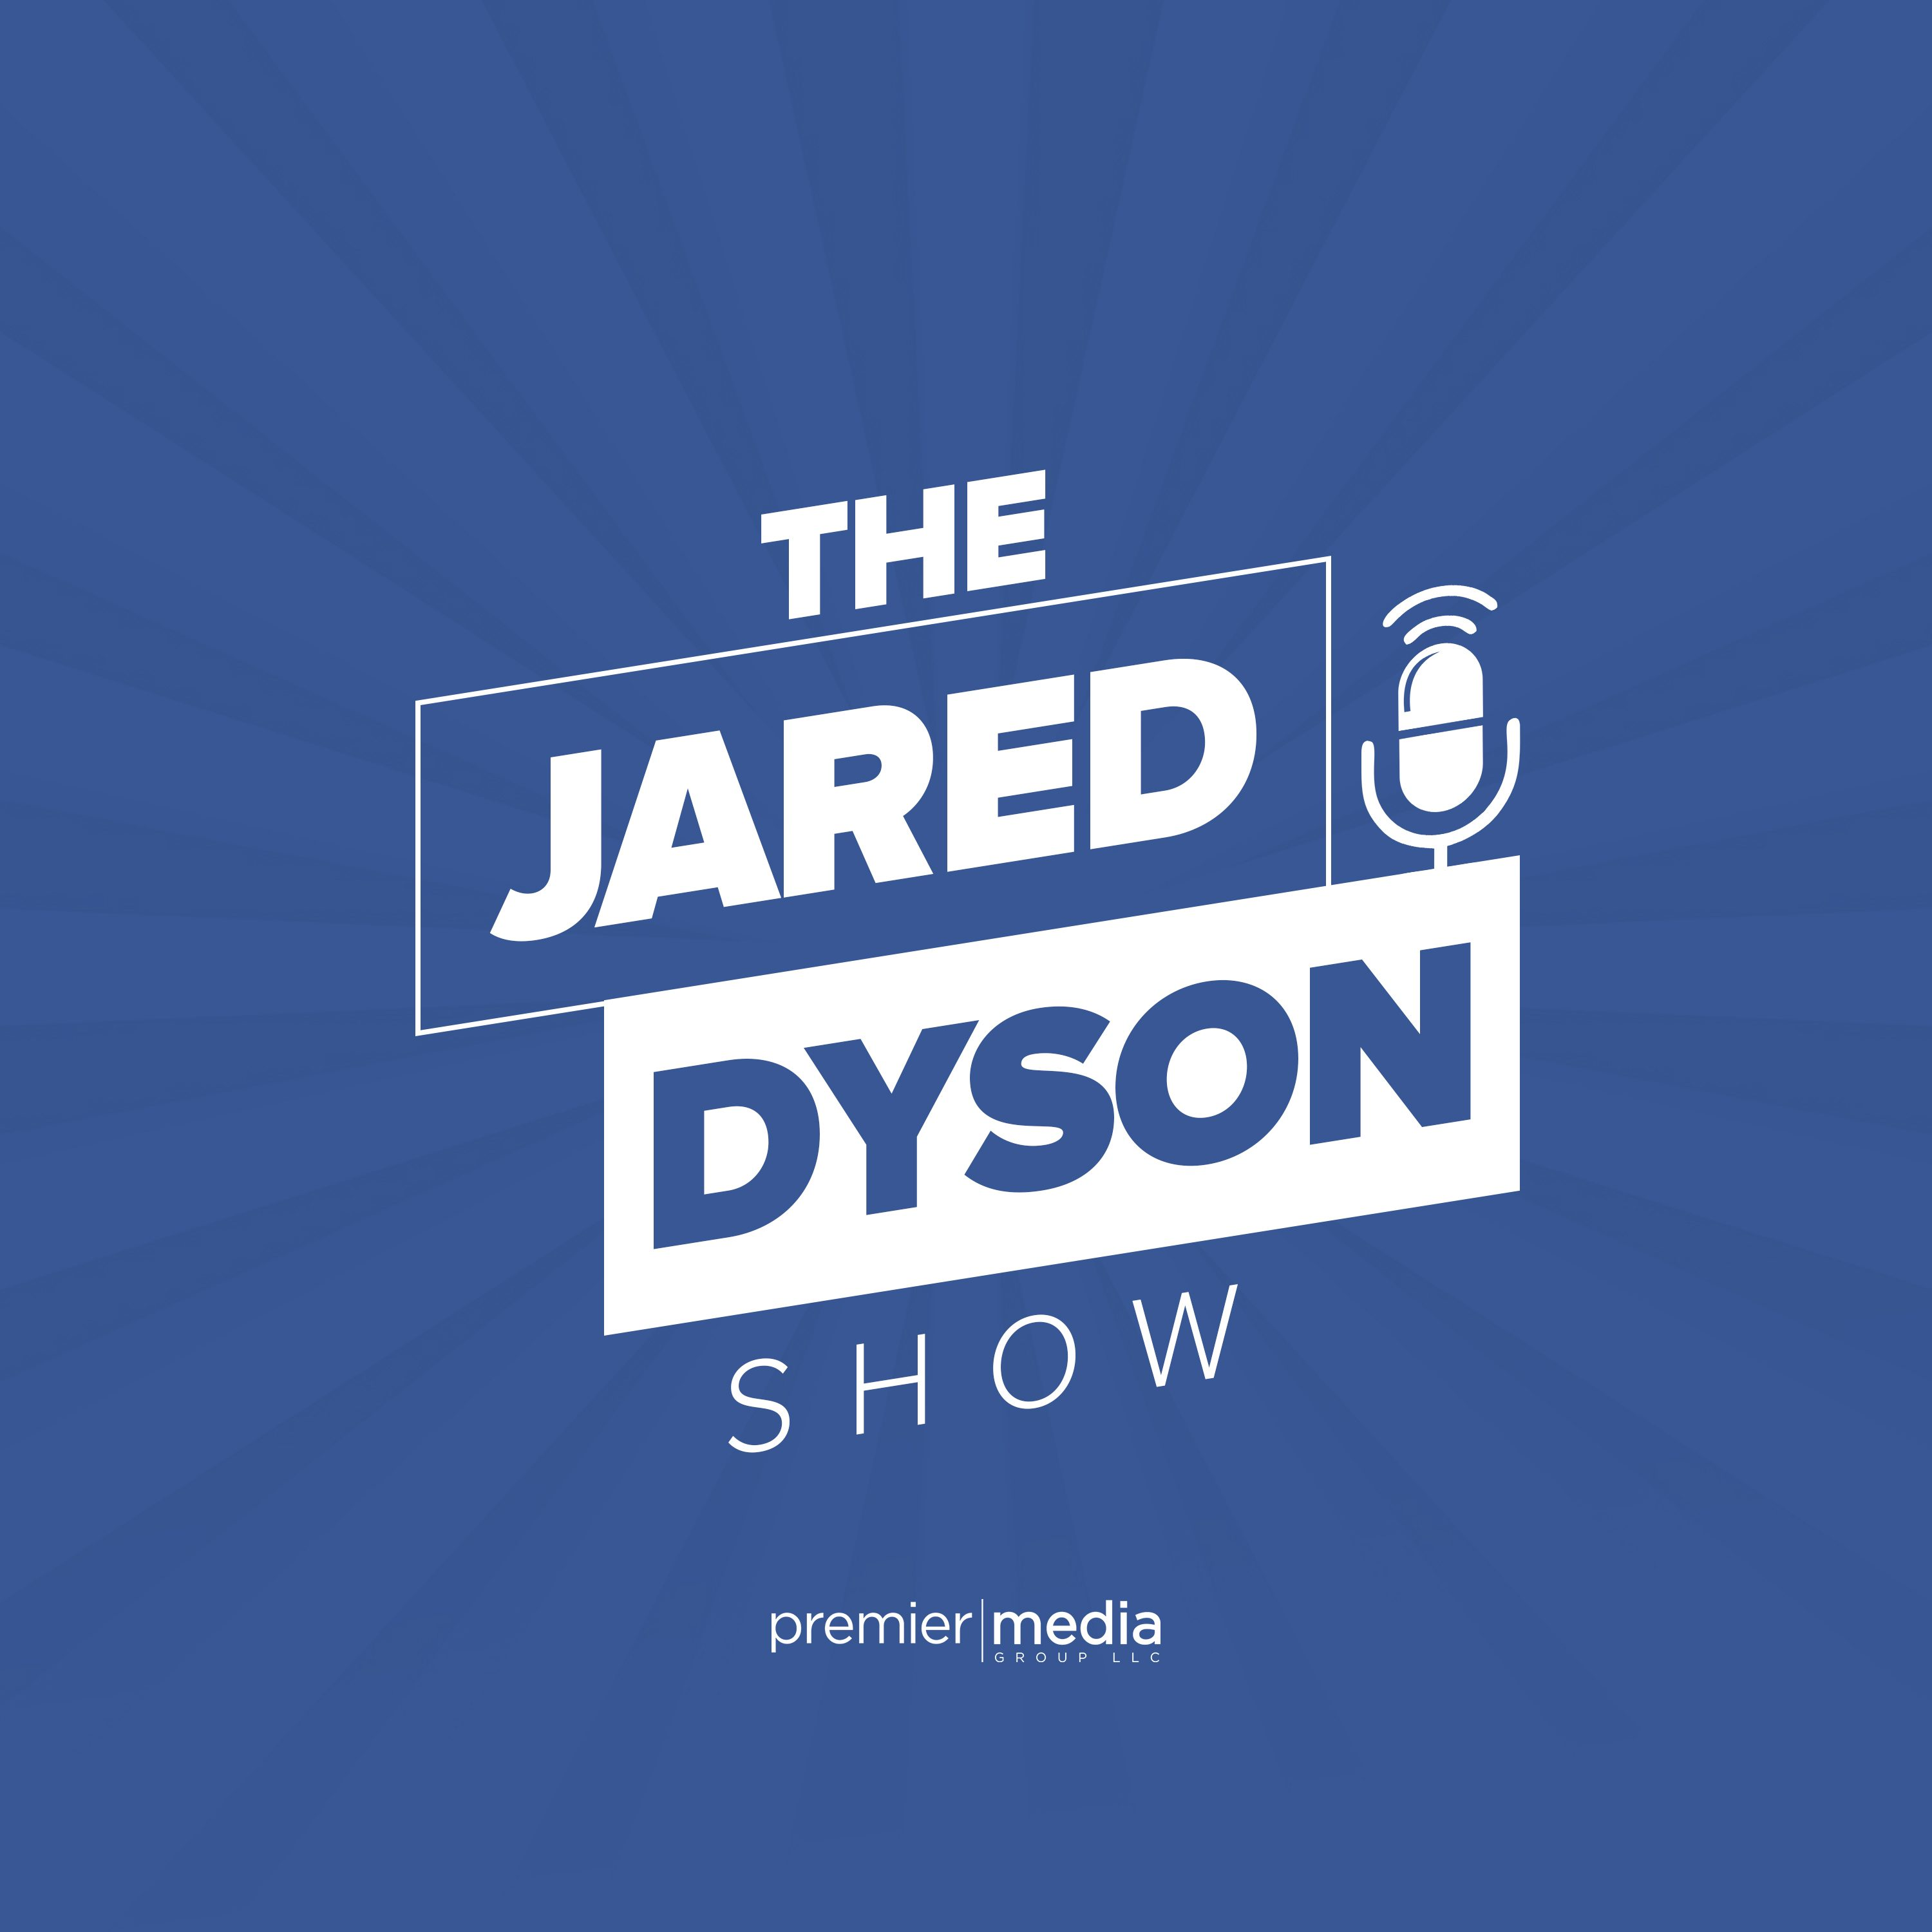 The Jared Dyson Show